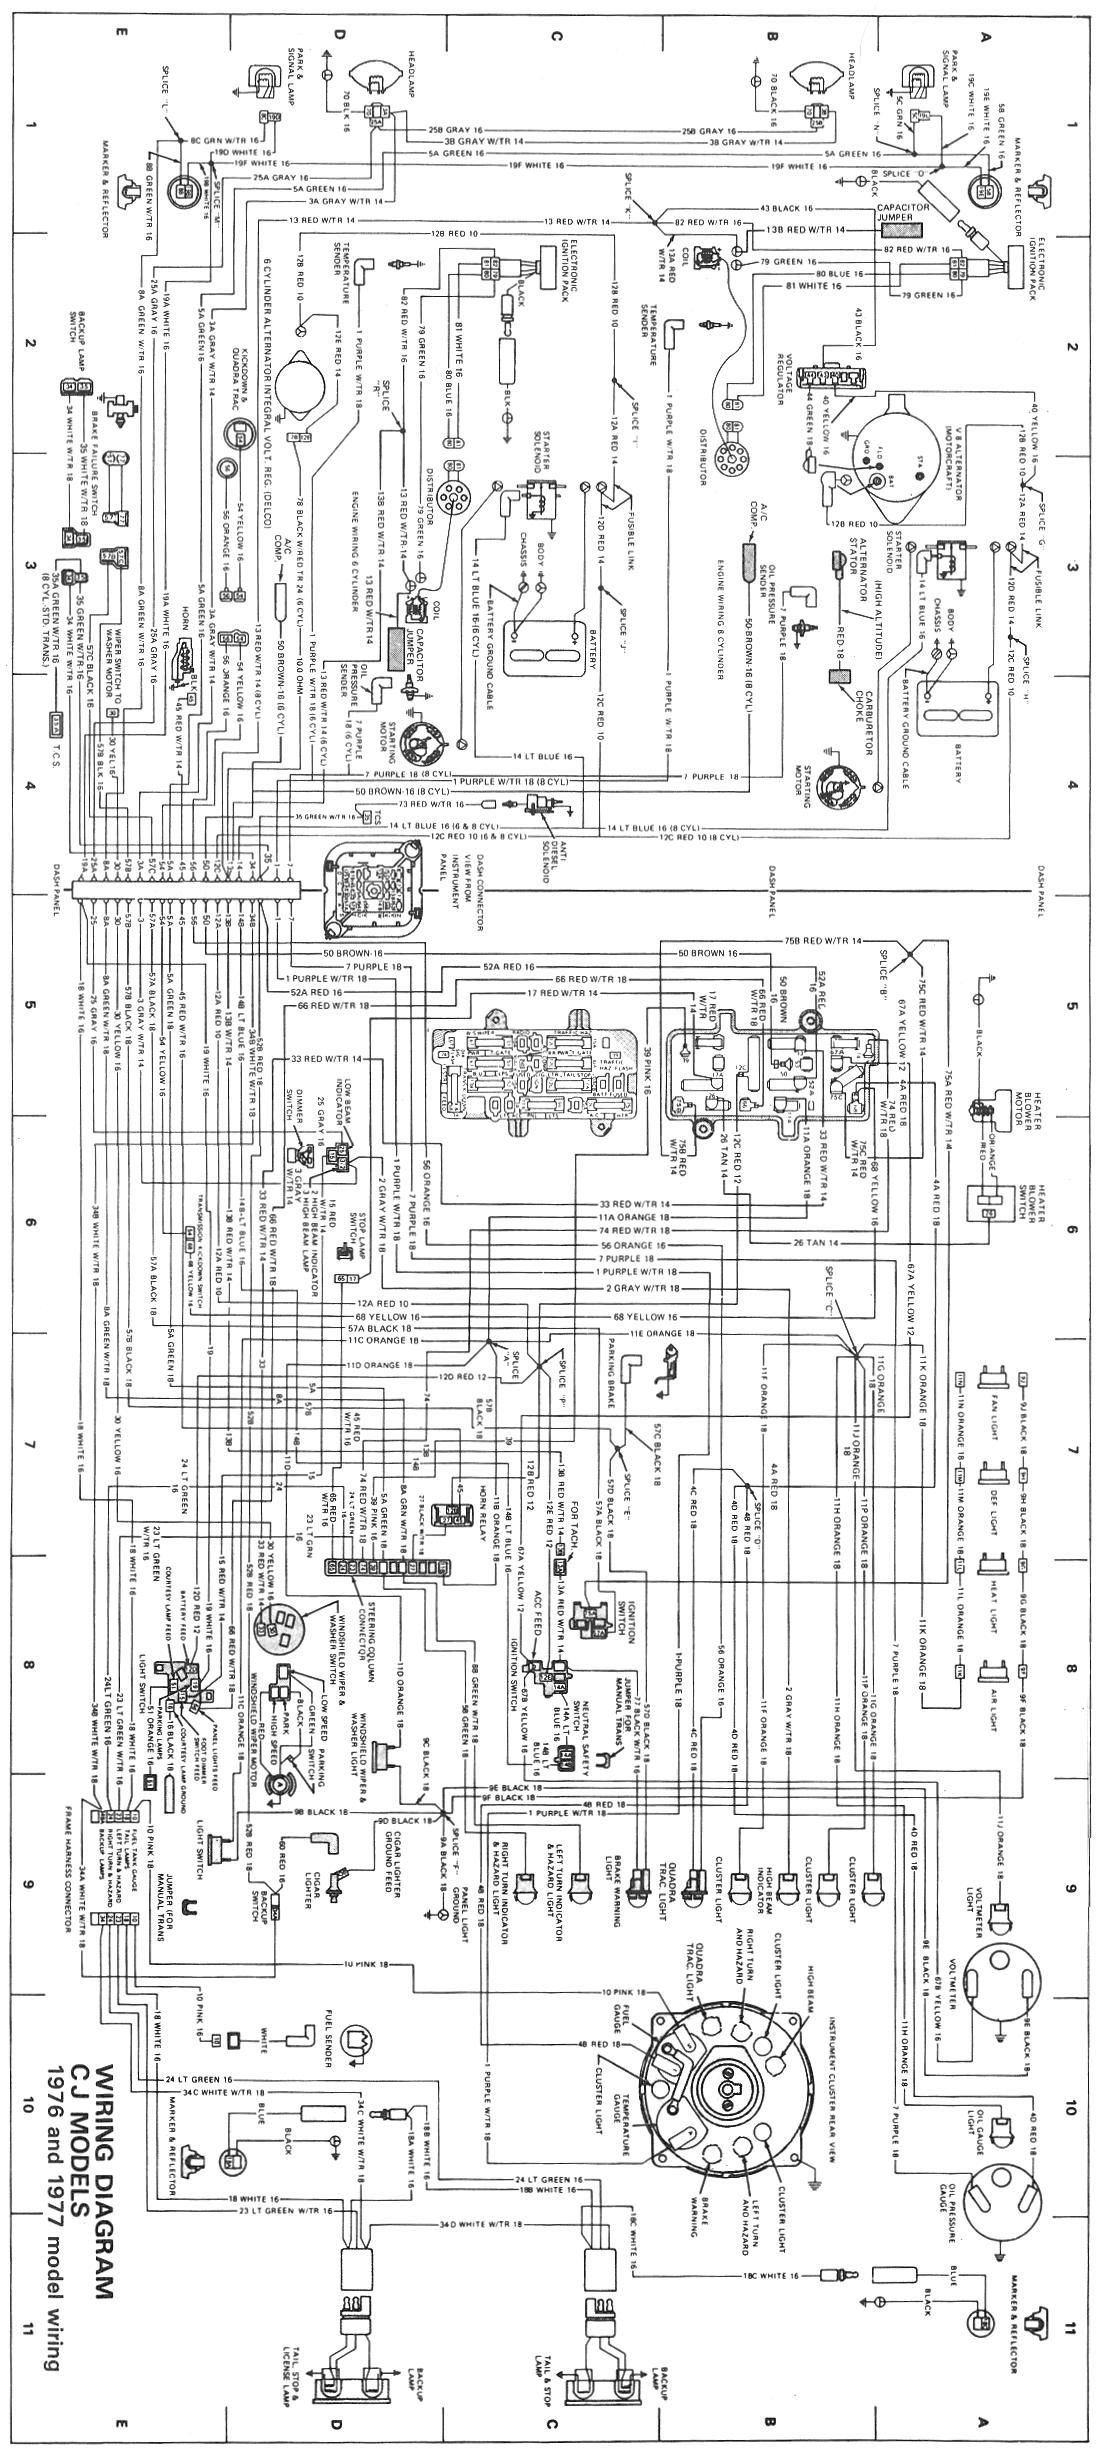 8d25ded6e3673519e155875e09844e5e cj wiring diagram 1976 1977 jpg 1,100�2,459 pixels 1976 jeep cj5 willys cj5 wiring diagram at crackthecode.co